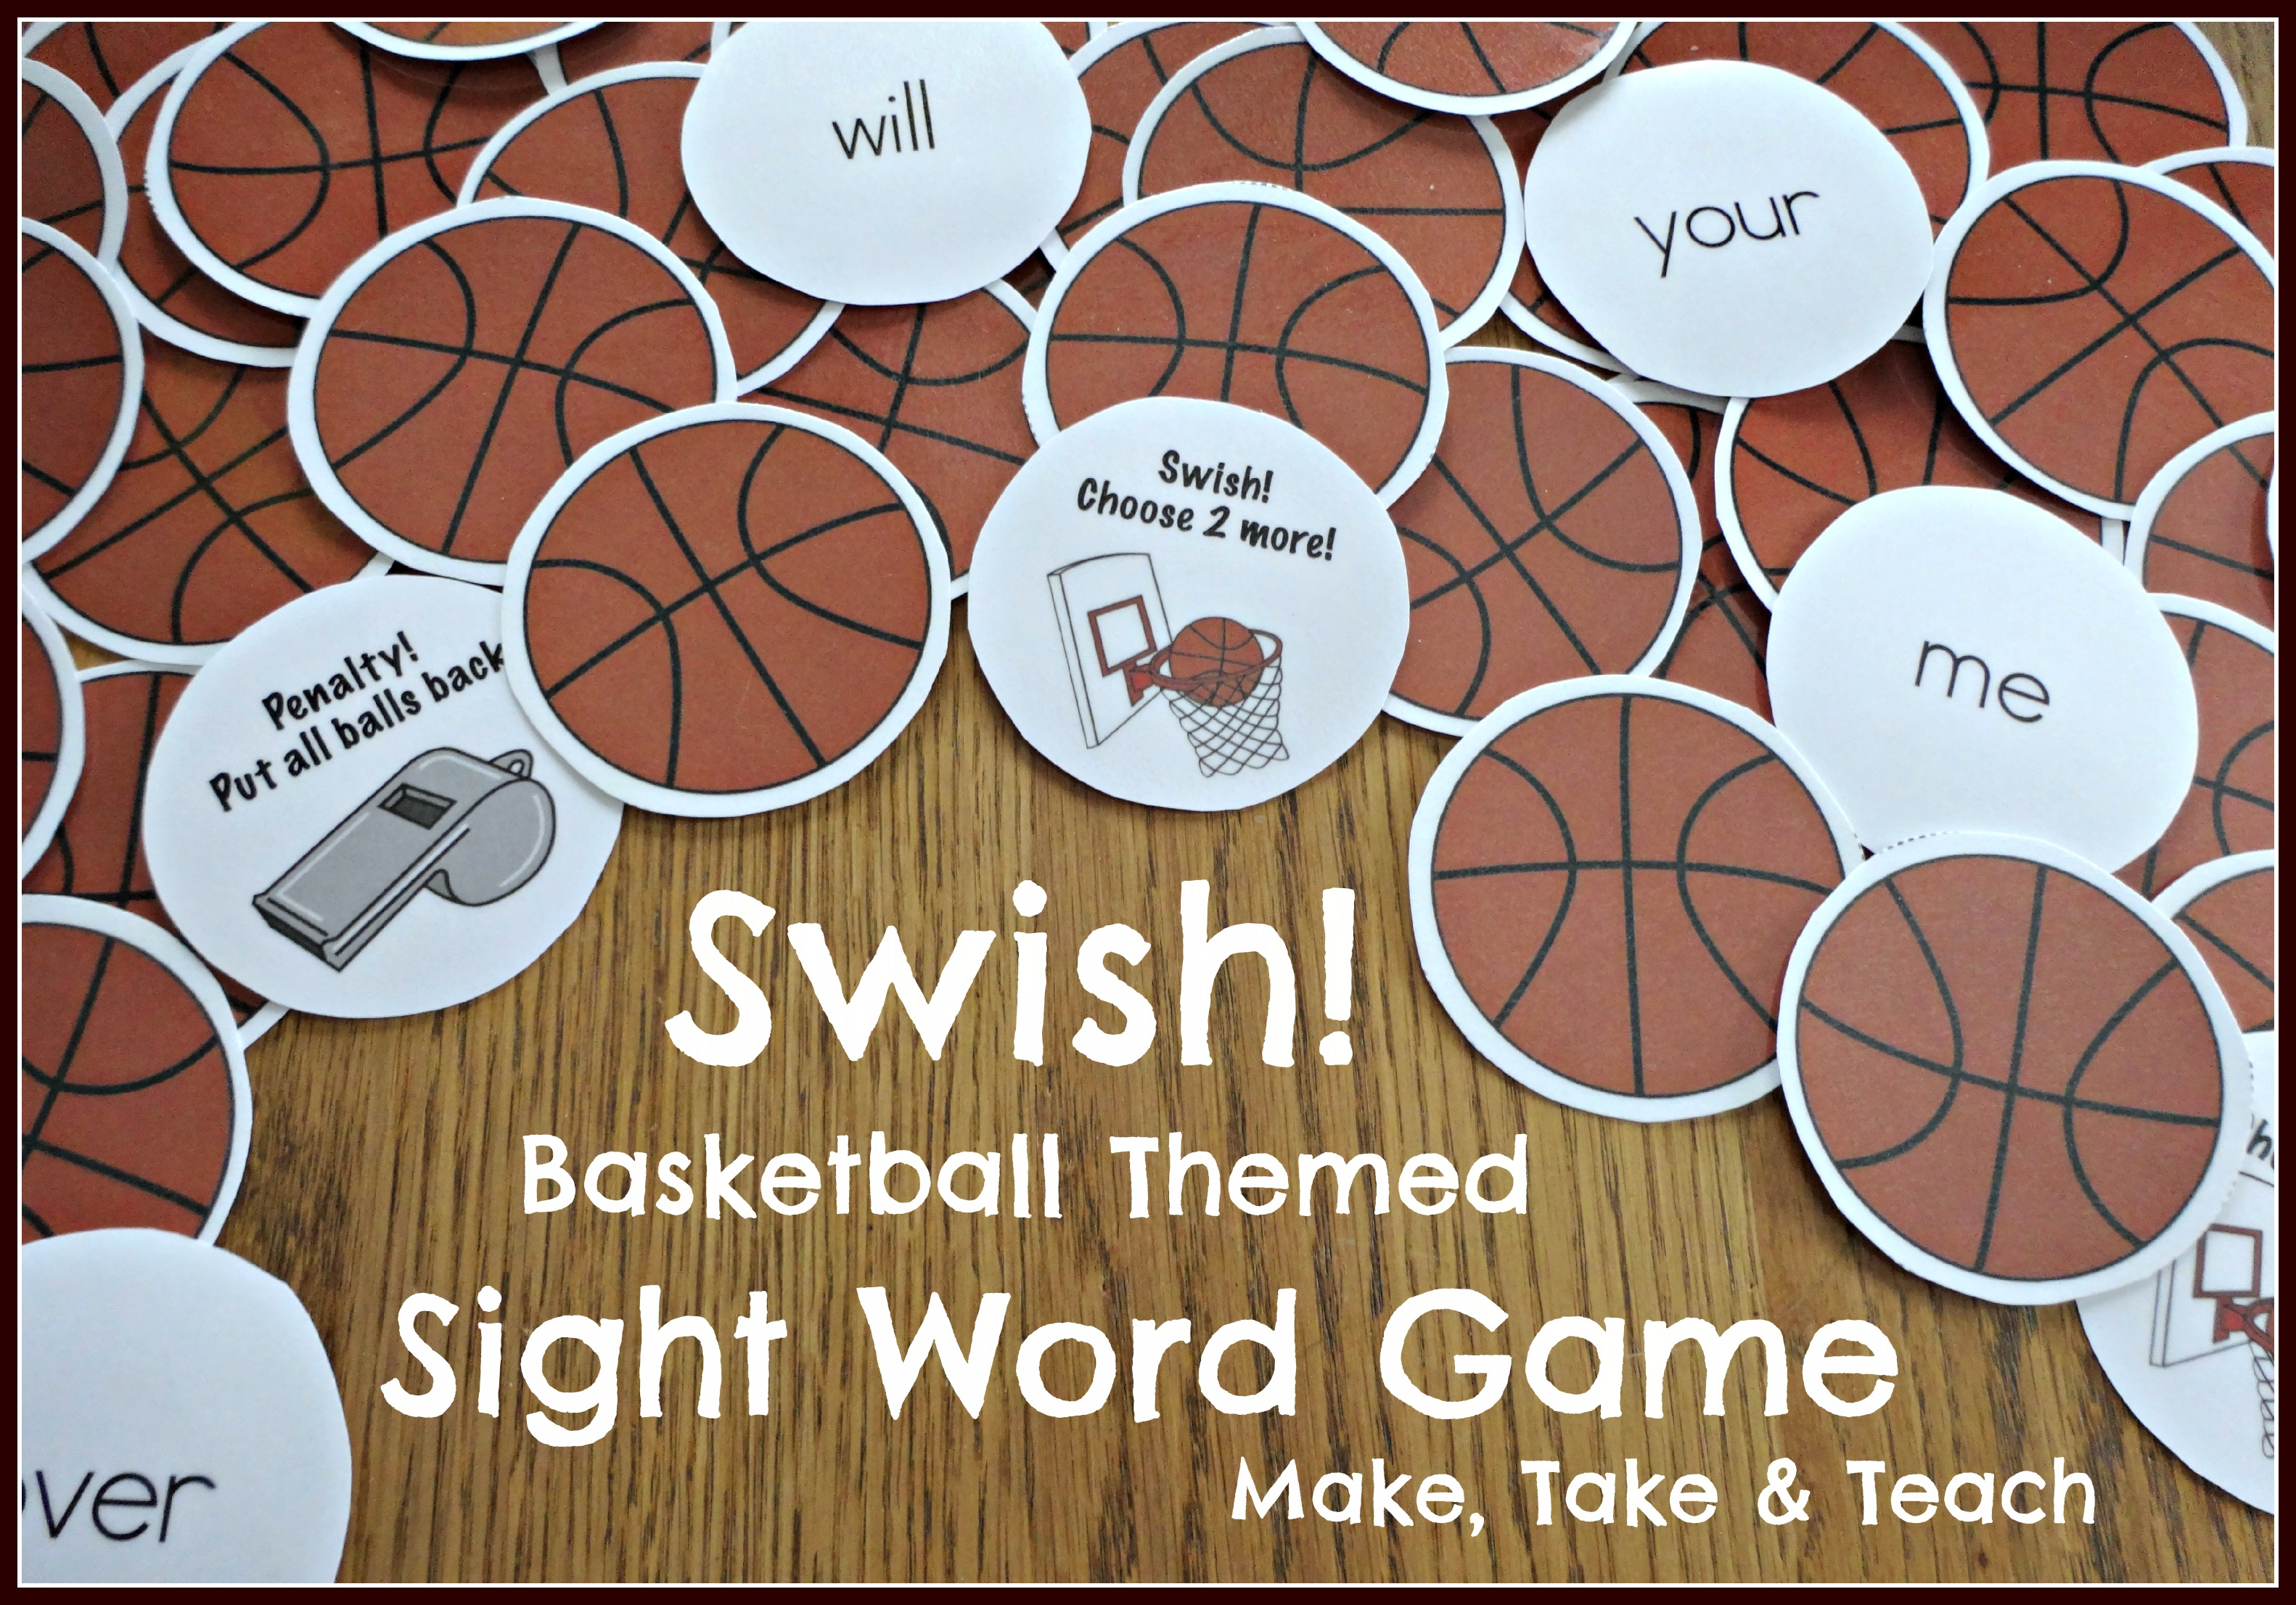 Even More Basketball Themed Activities